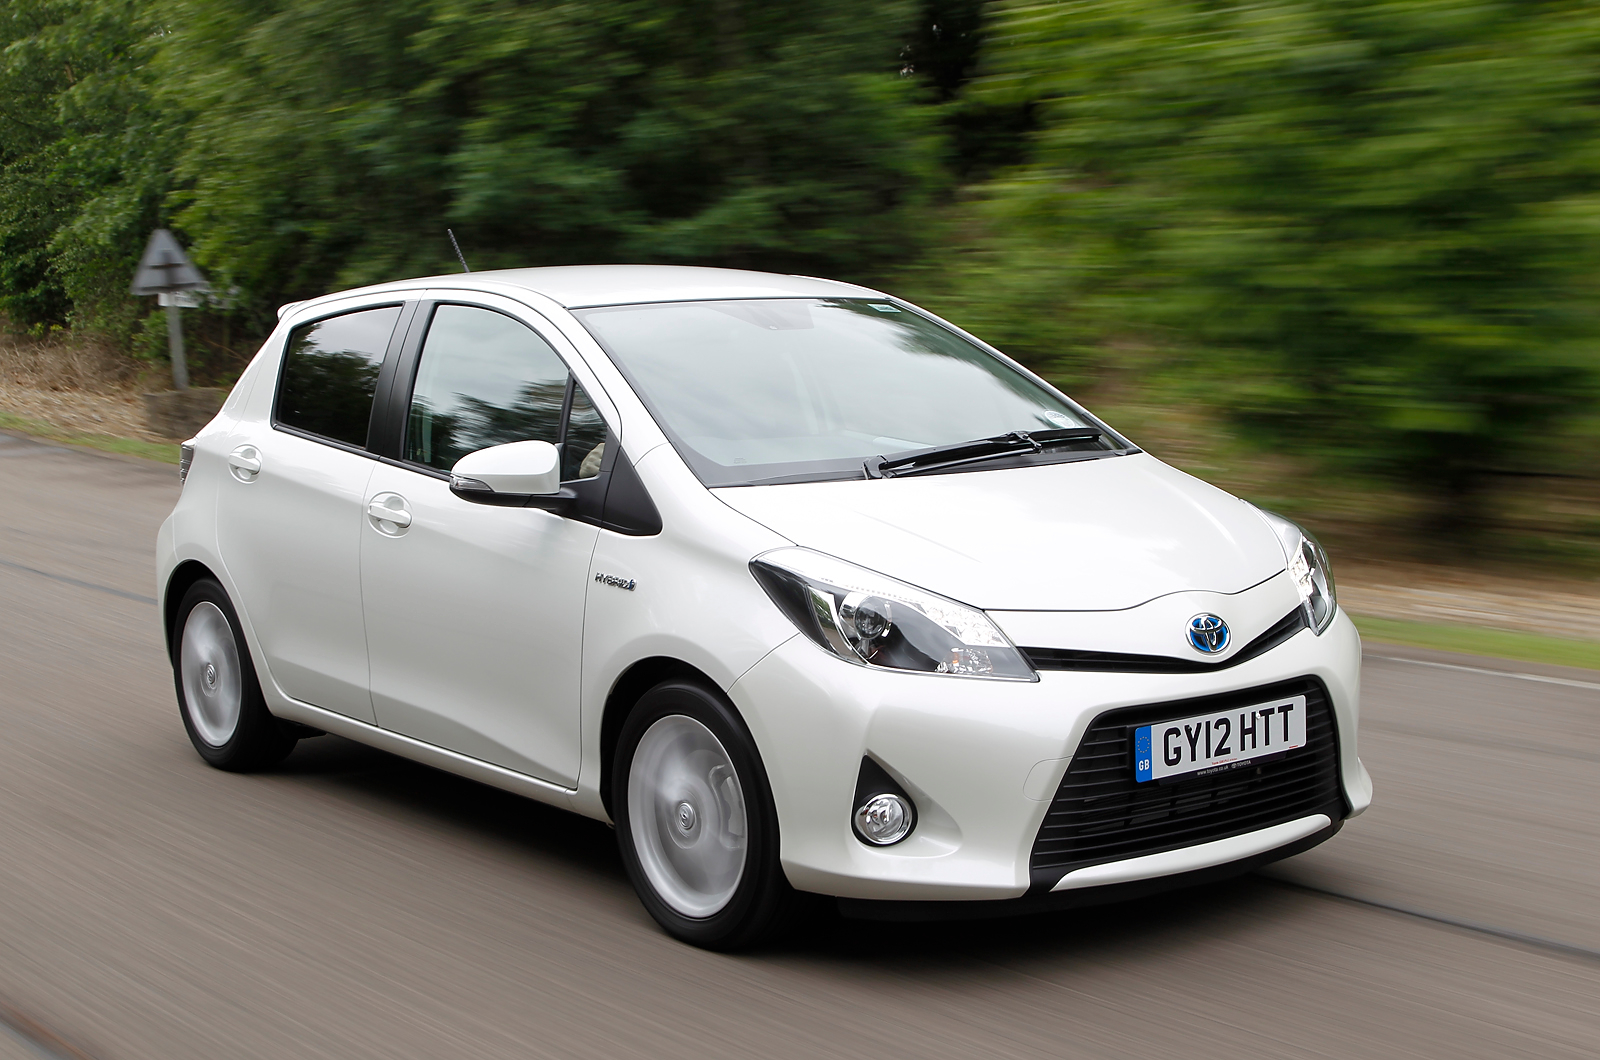 Toyota Yaris Hybrid technical details history photos on Better